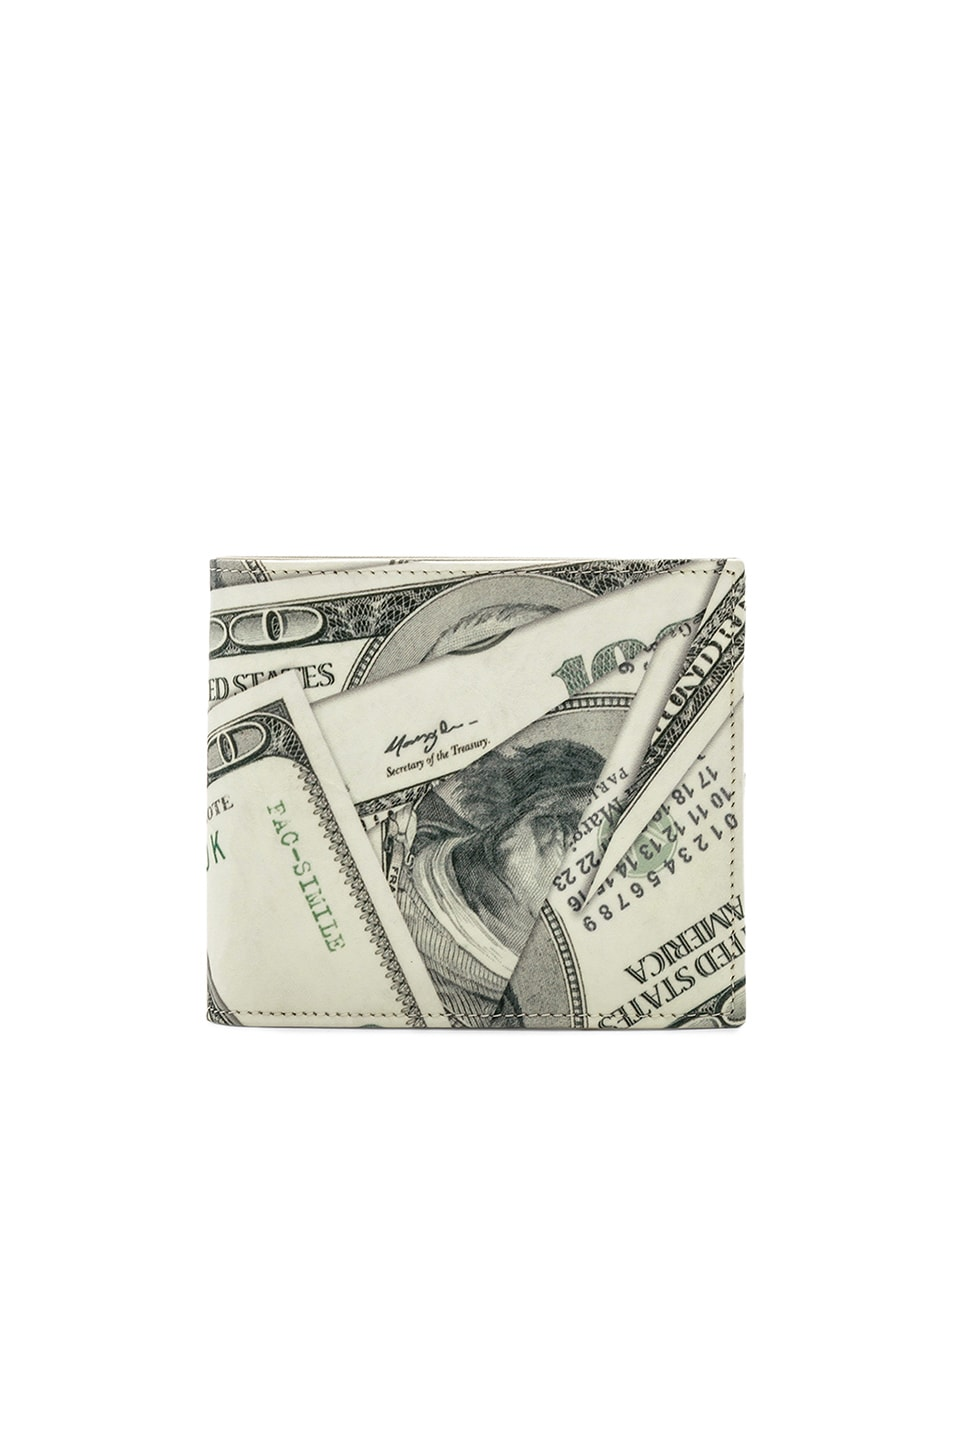 103380db8b27f5 Maison Margiela 2x Martin 11 Dollar Bill Elastic Band. Image 1 Of Maison  Margiela Wallet In Dollar Print. Maison Margiela Wallet In Dollar Print Fwrd